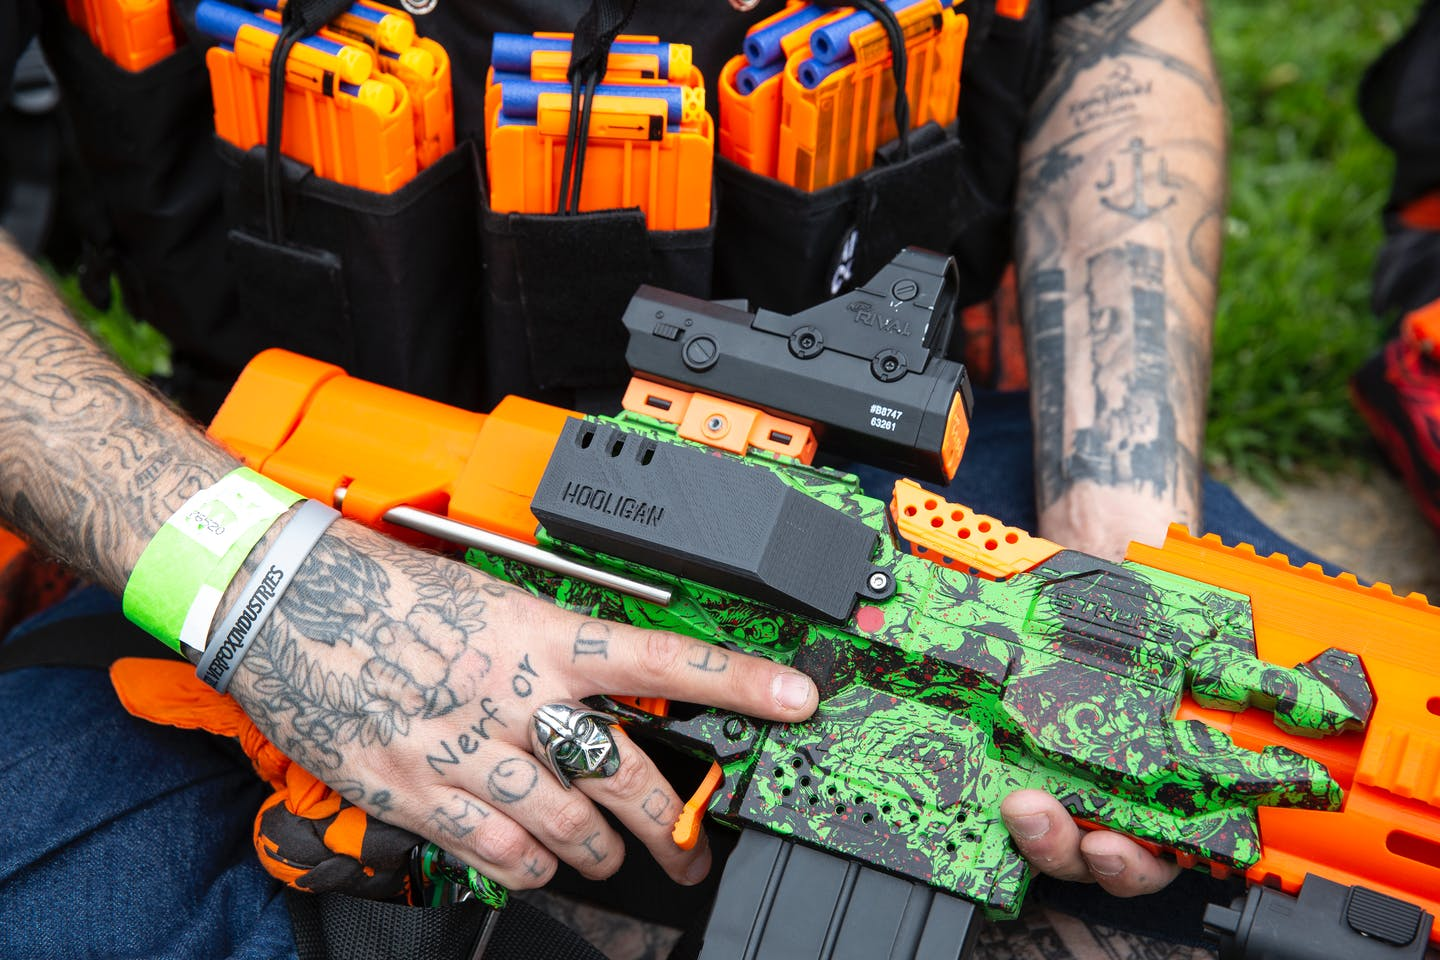 acfa2de257f3 Play Combat — Reporting on Toy Guns that Look Real | Topic